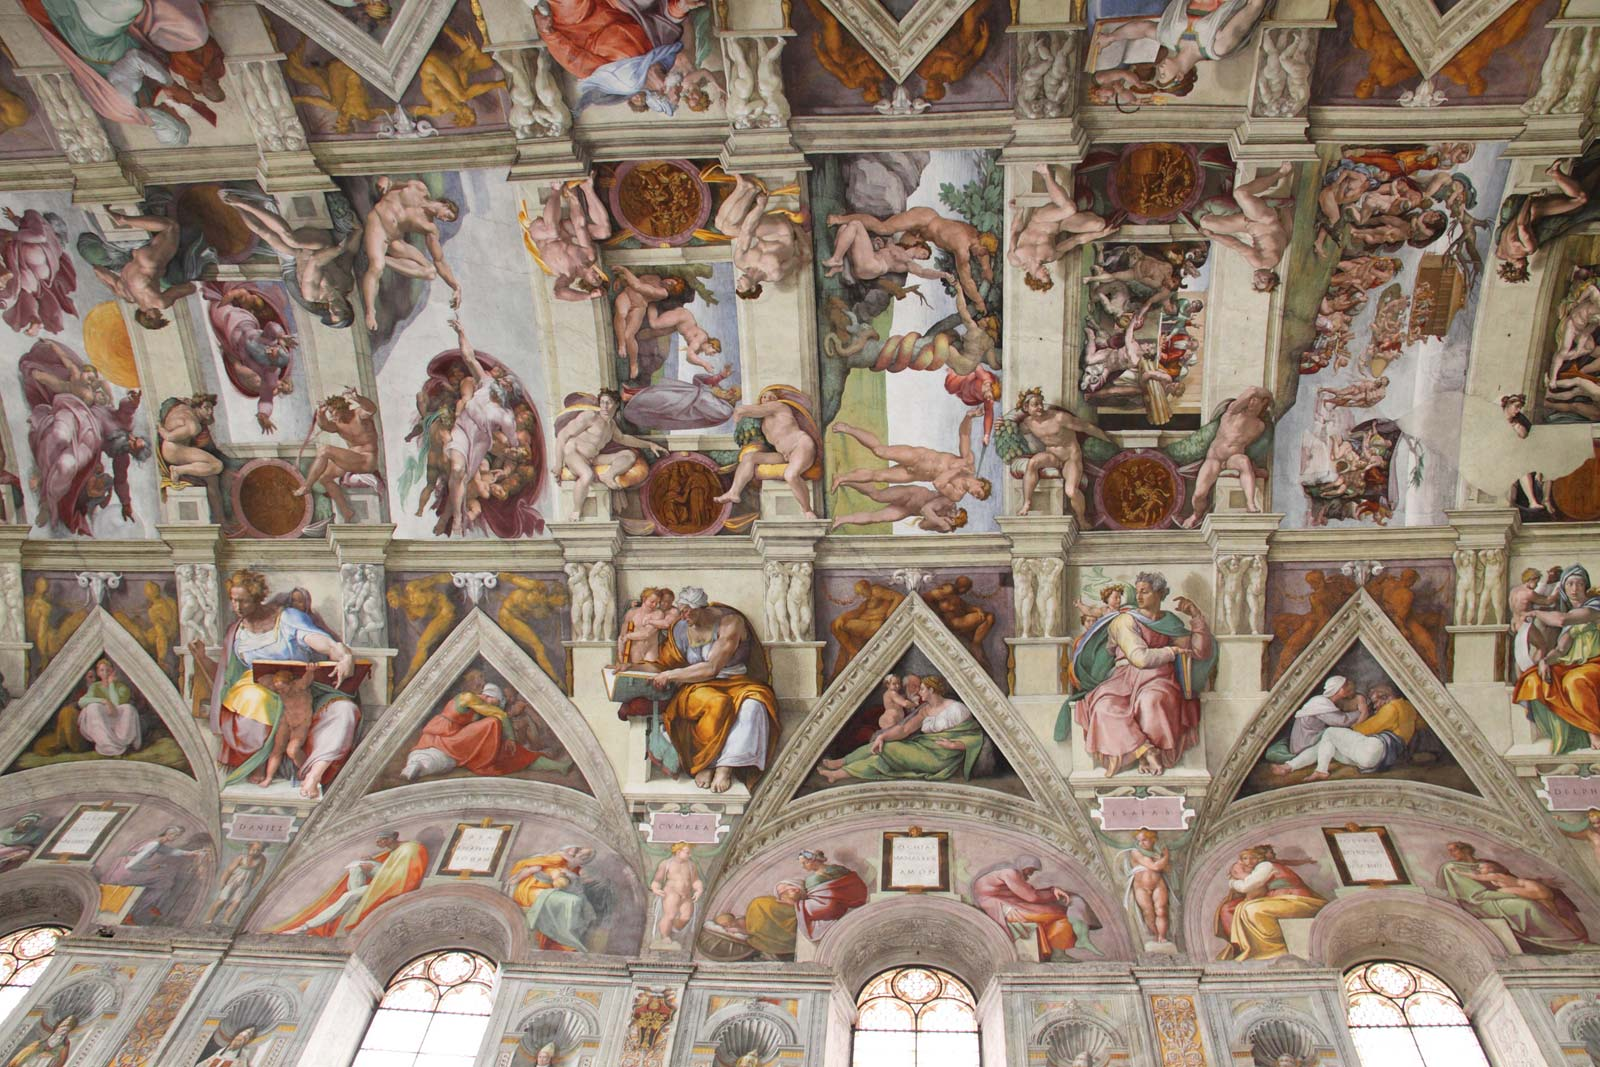 Marvel at Michelangelo's incredible frescoes in the Sistine Chapel – The Last Judgment and The Creation of Adam - one of the greatest masterpieces of the Renaissance period. You'll be able to take all the time that you want to admire this amazing work of art.